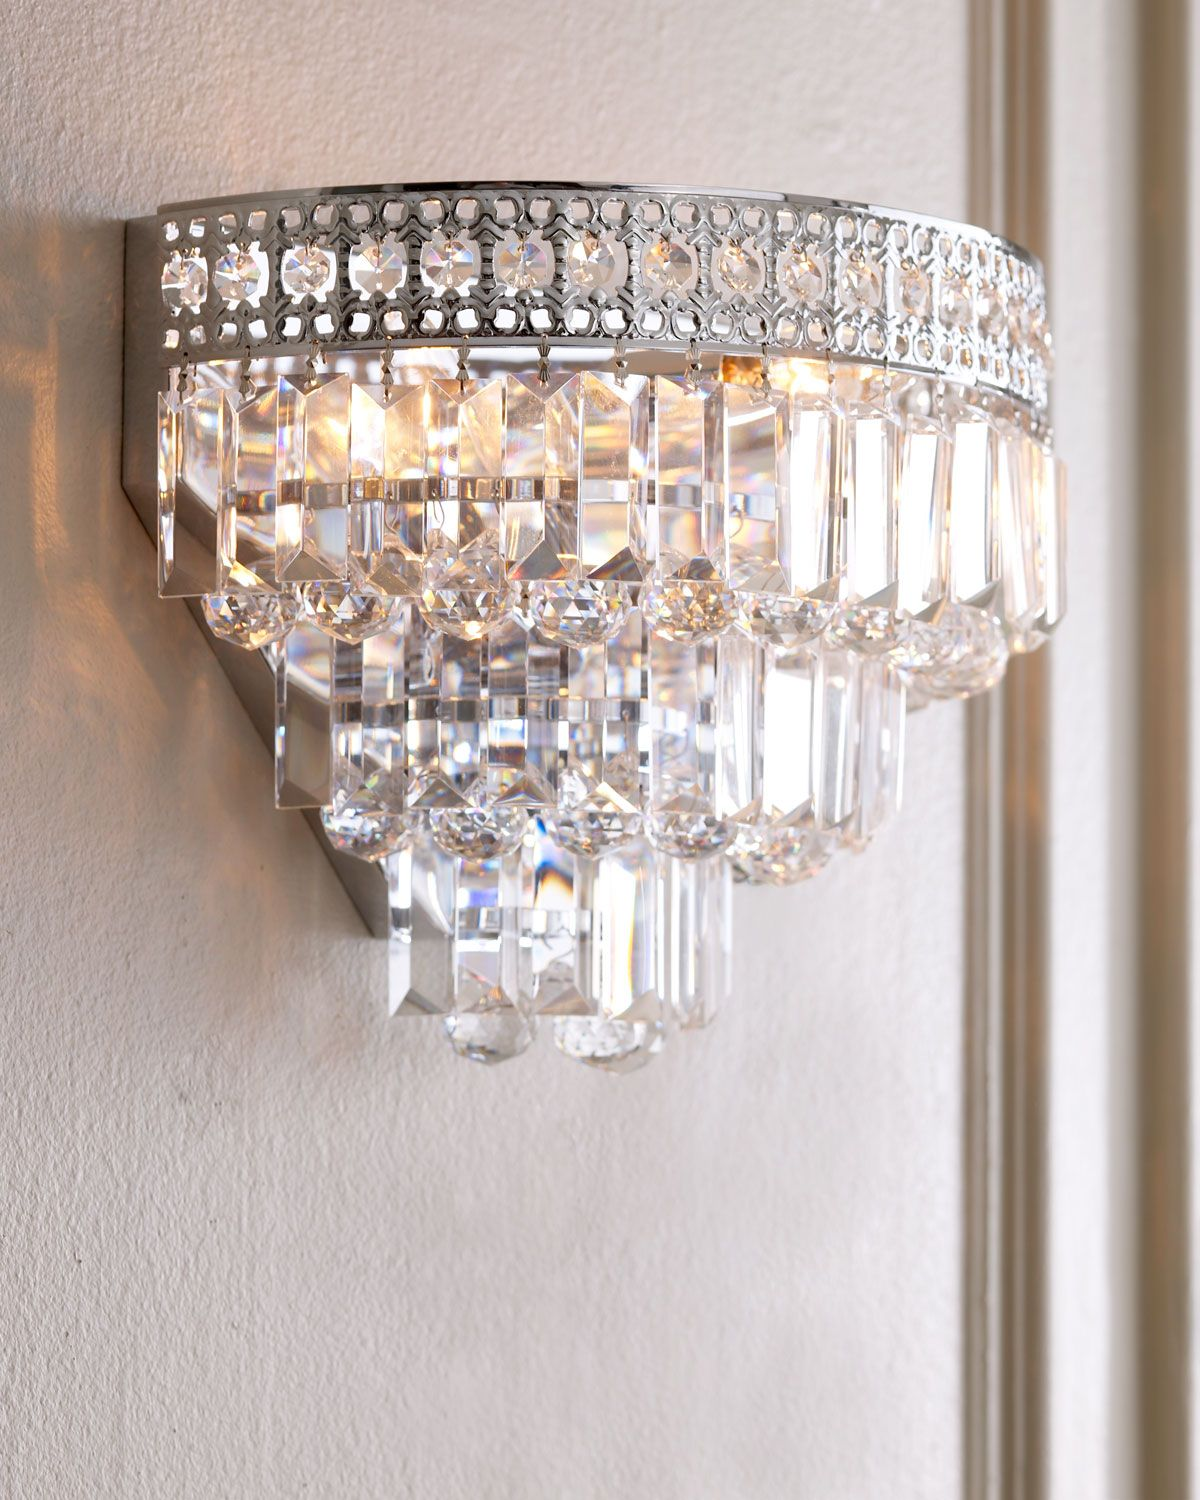 Crystal Wall Sconce From Horchow The Living Room Pinterest